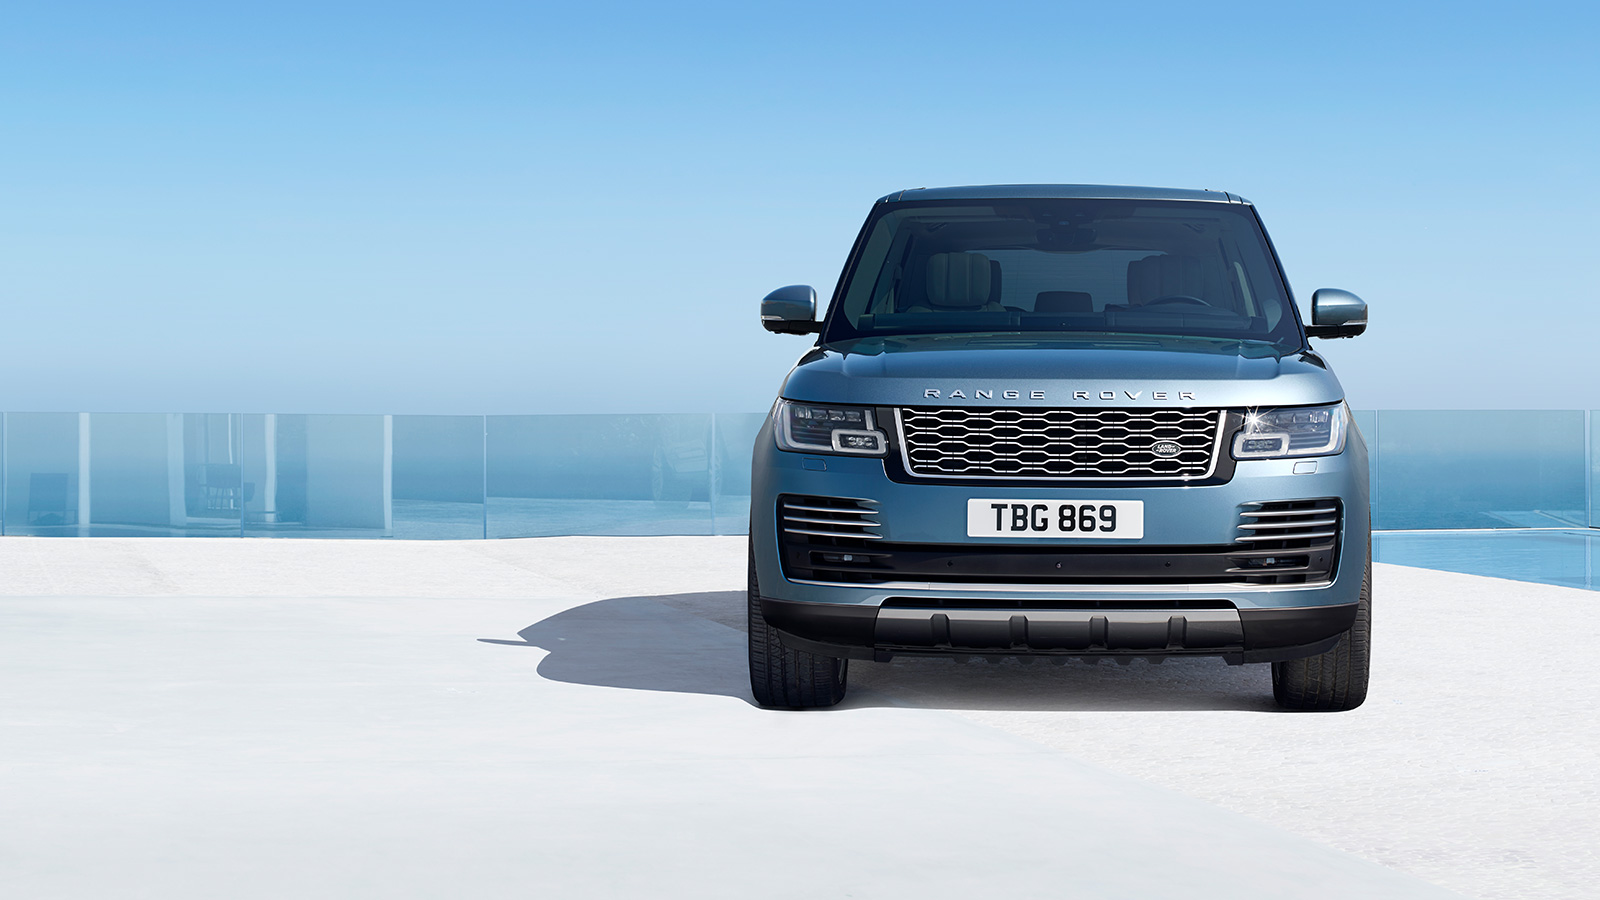 New Range Rover >> TECHNOLOGIE